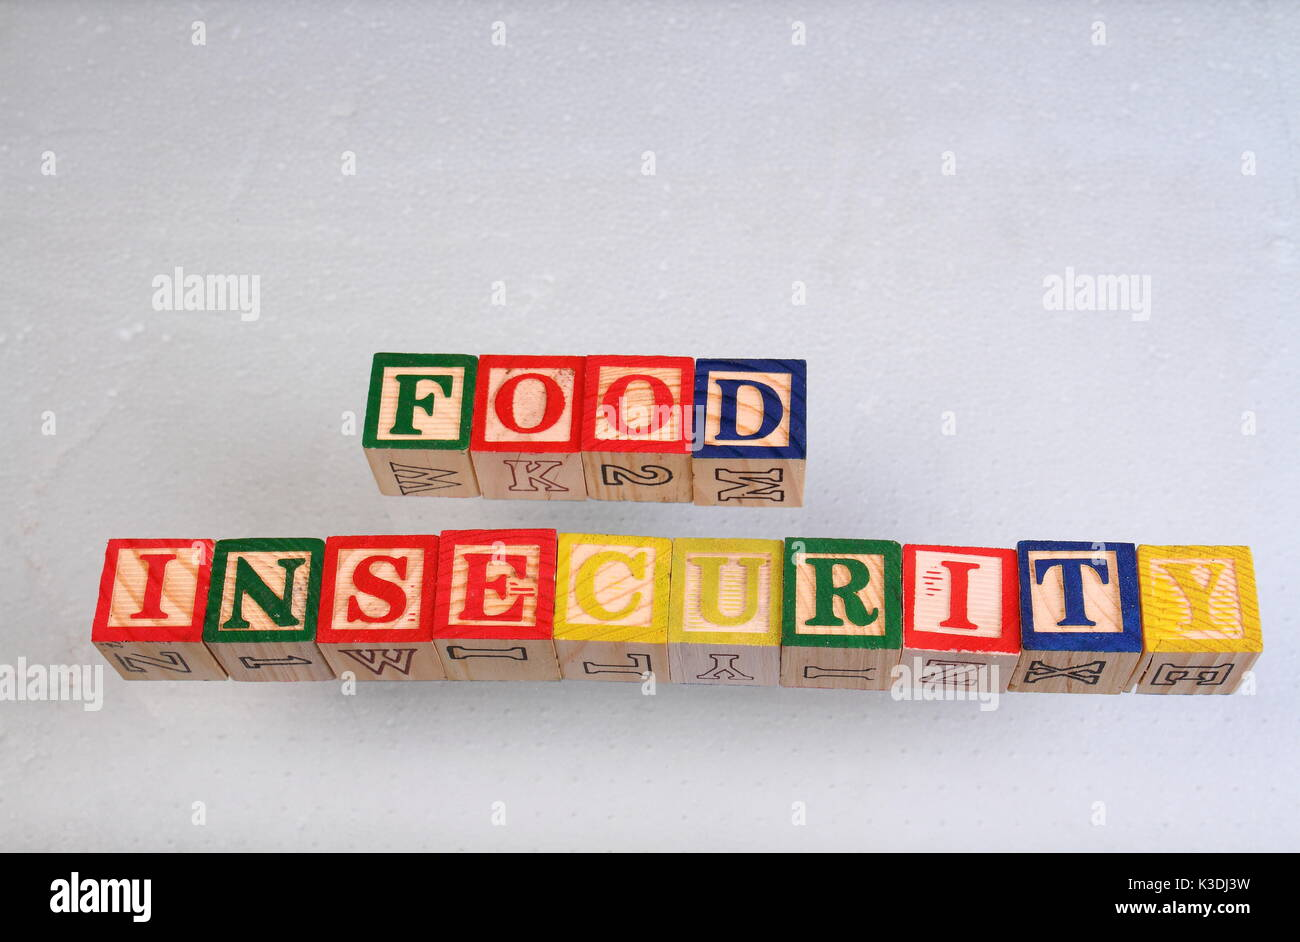 The term food insecurity displayed visually on a white background using colorful wooden toy blocks in landscape format with copy space - Stock Image